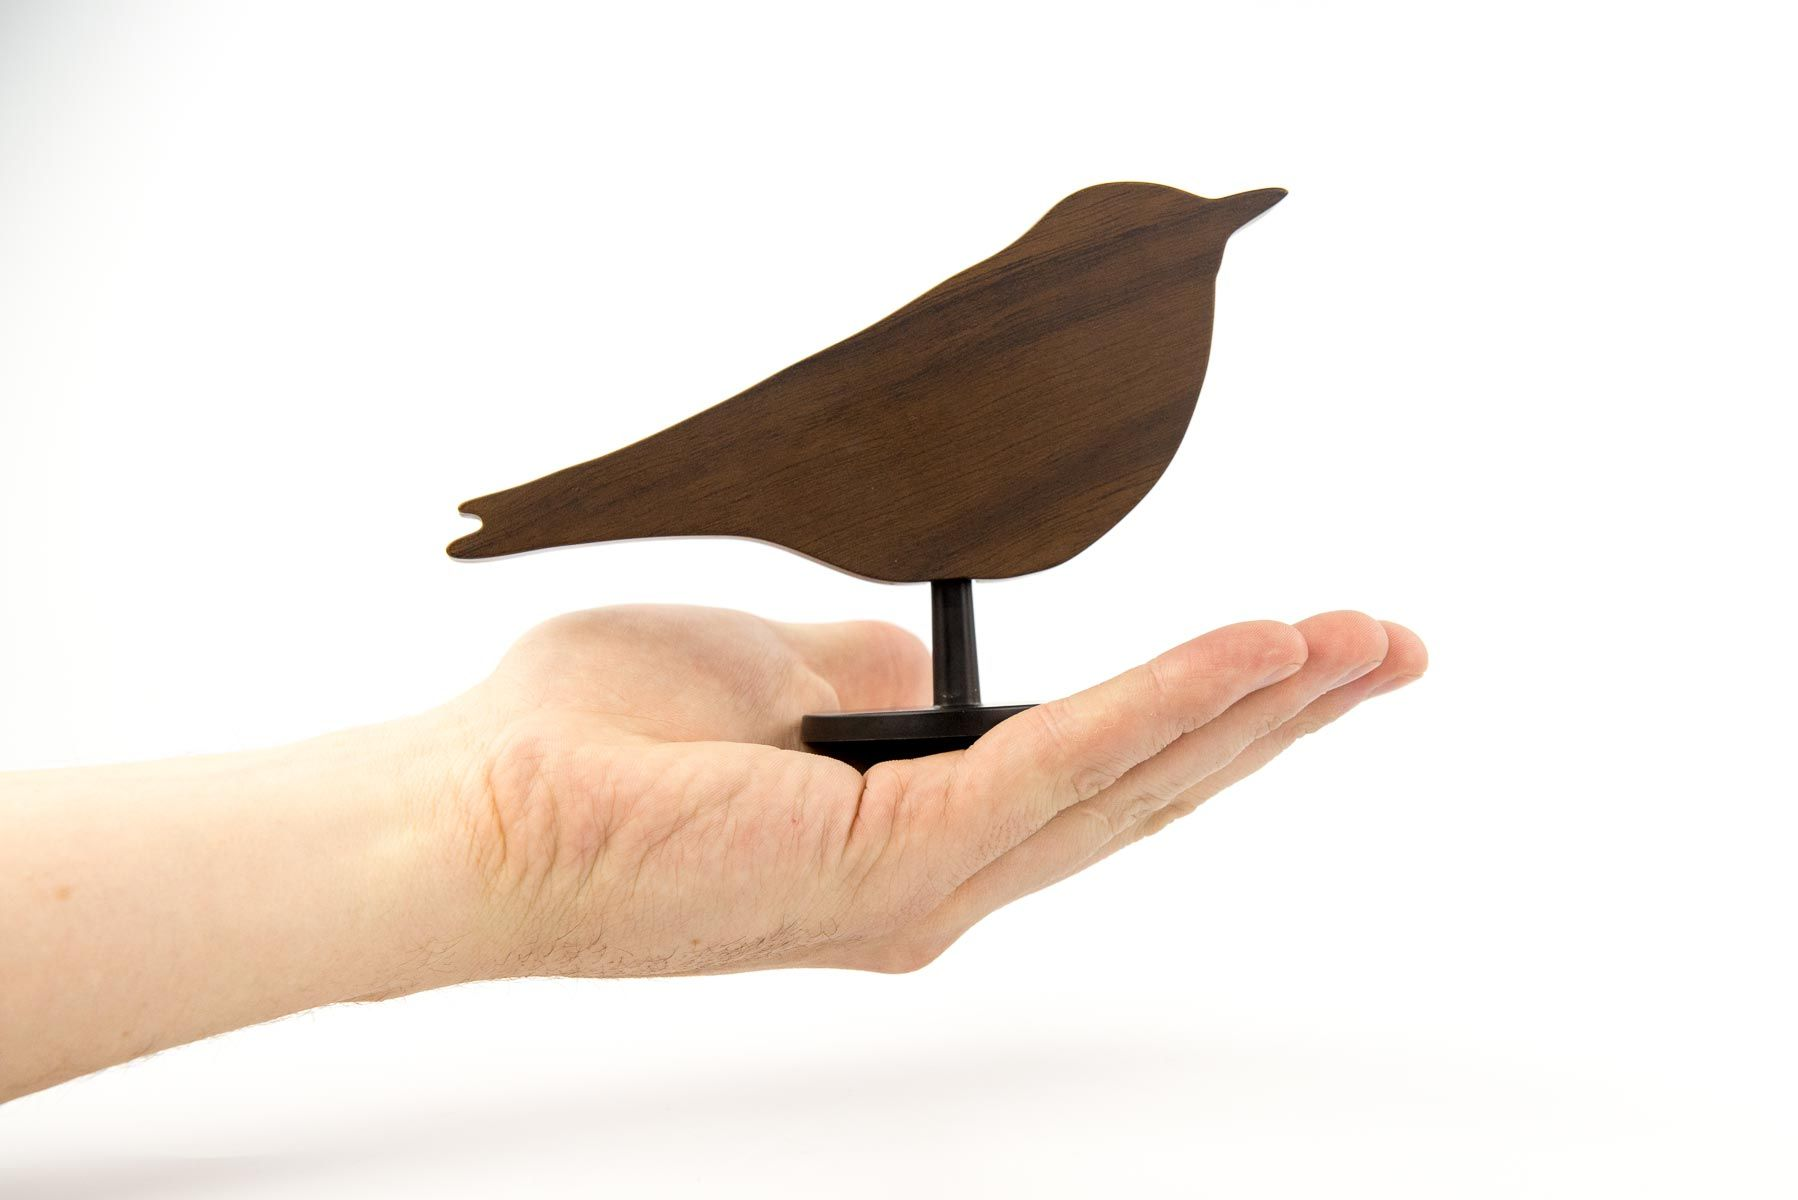 What a tweet way to wake up! Bird Clock from @anddesign_t is the anti-alarm